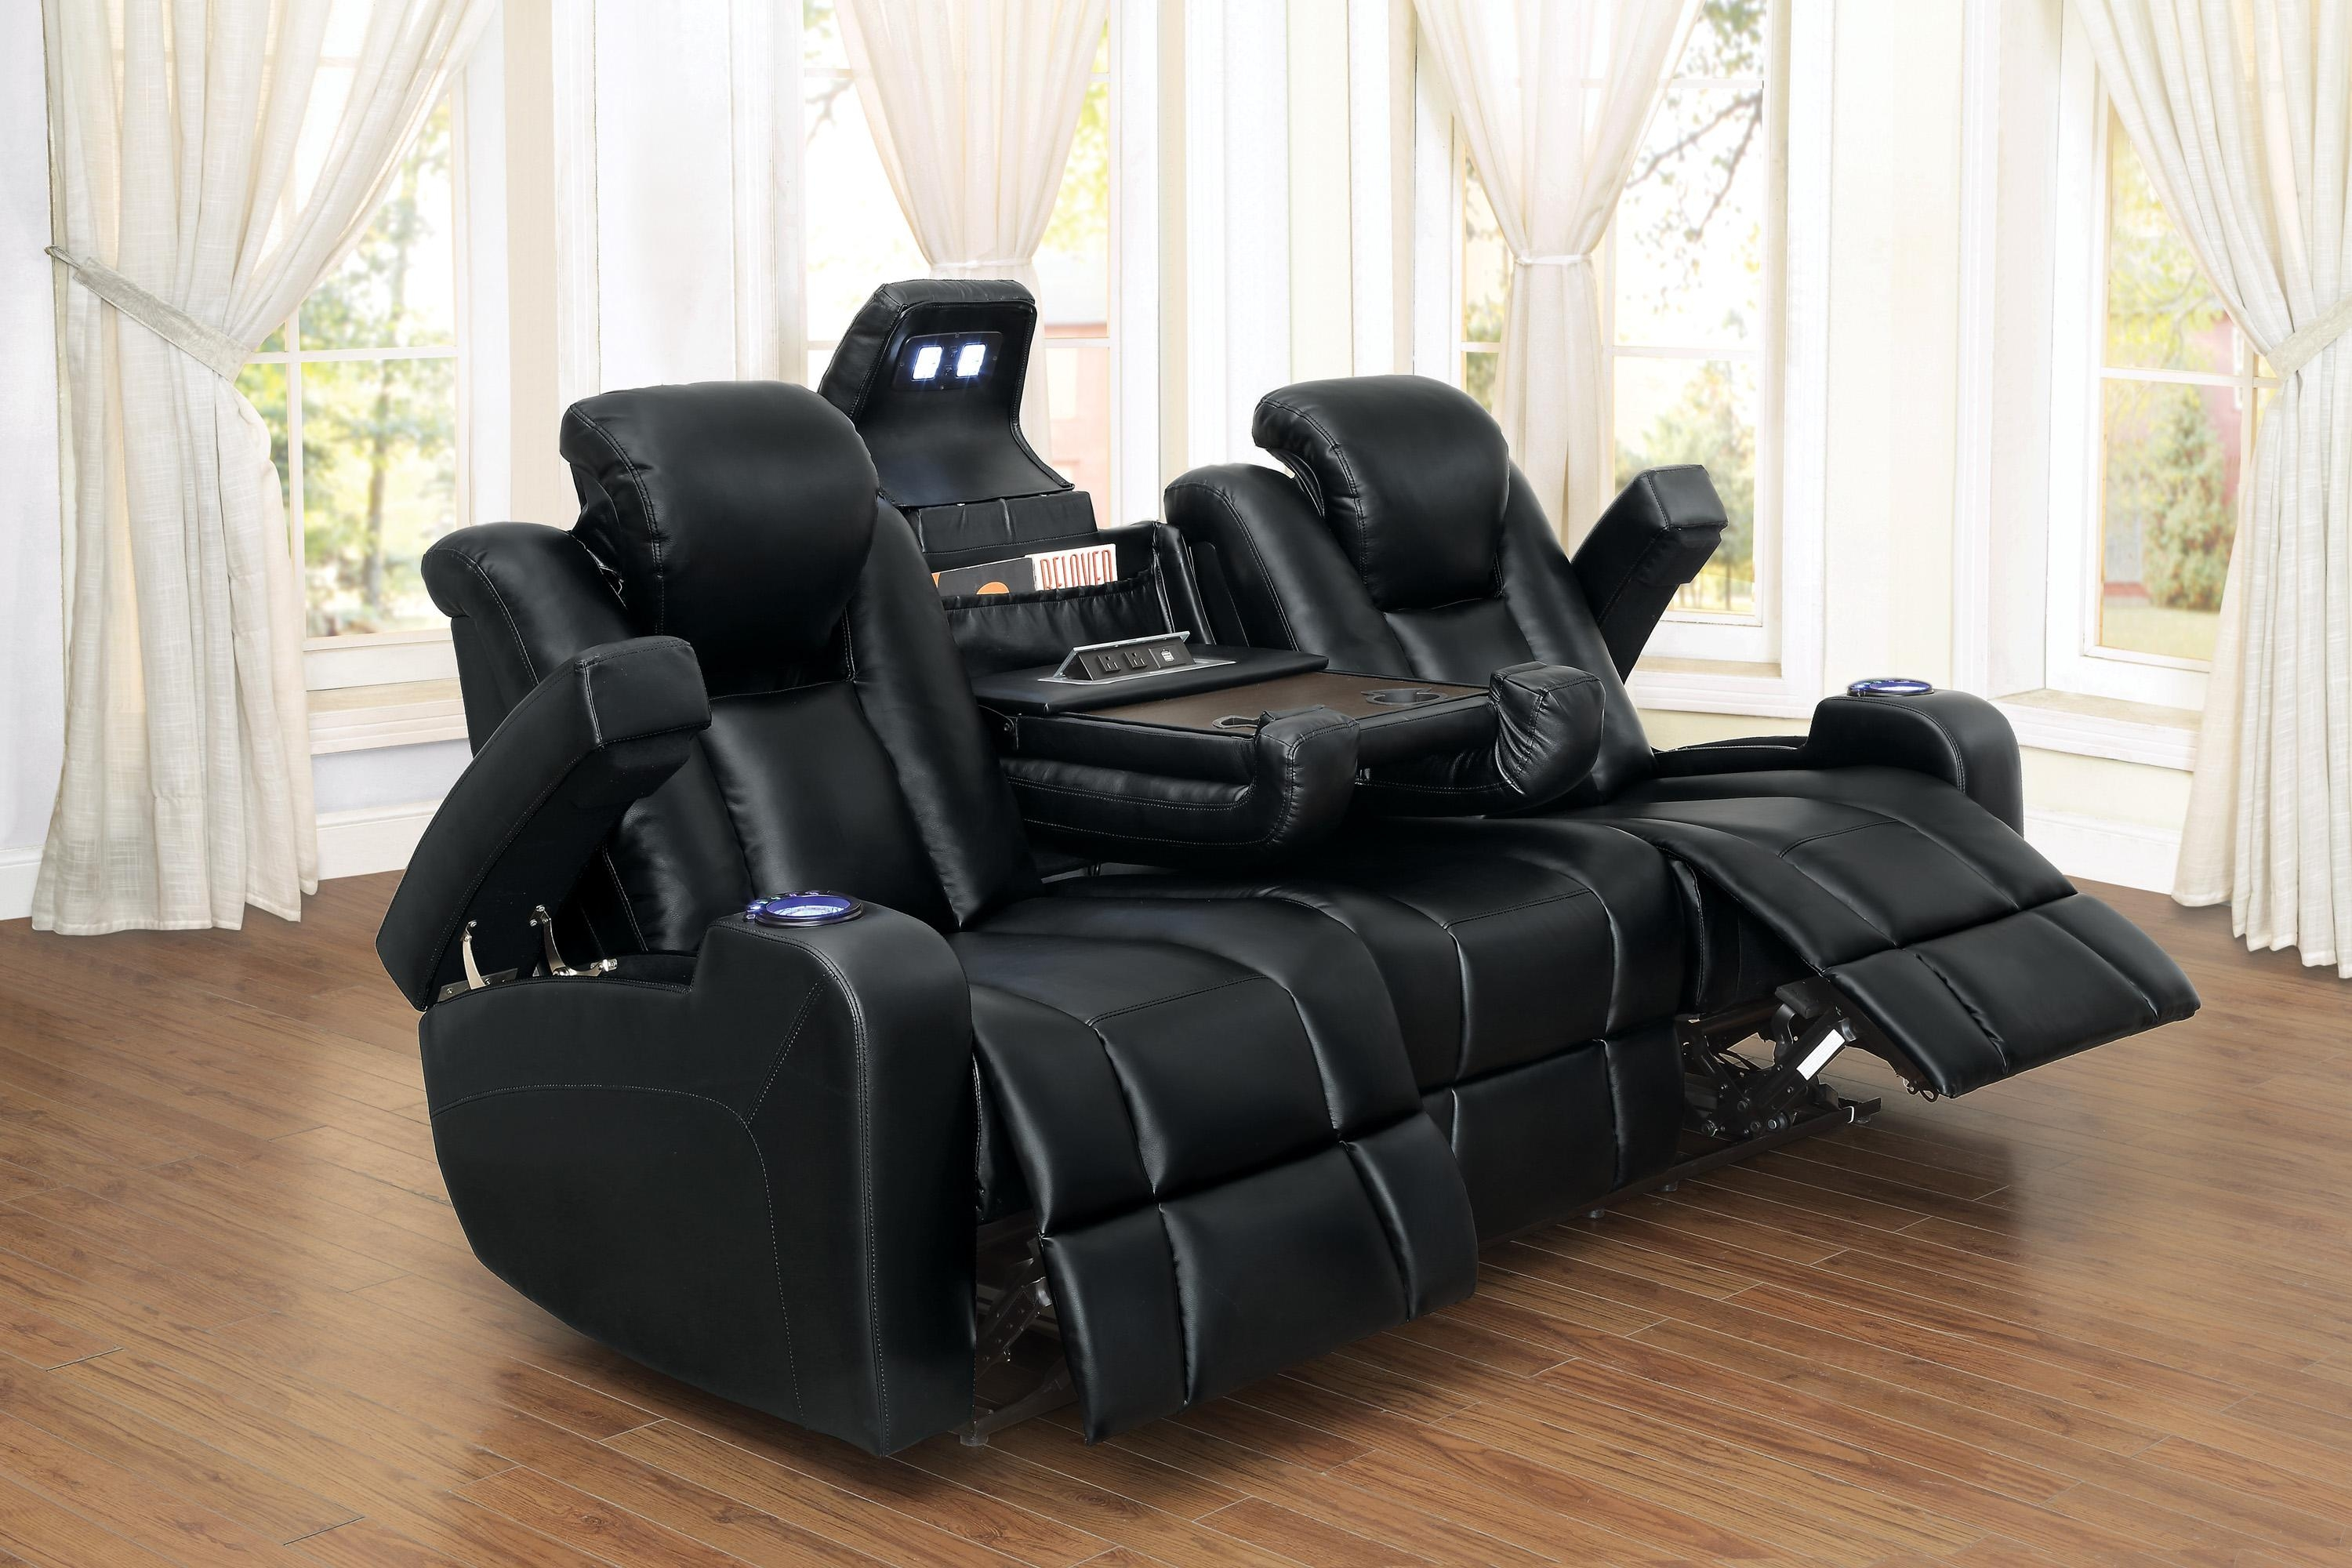 Tony Home Theatre Collection Led Lighting Cup Holders Adjustable For Sofas With Cup Holders (Image 20 of 20)